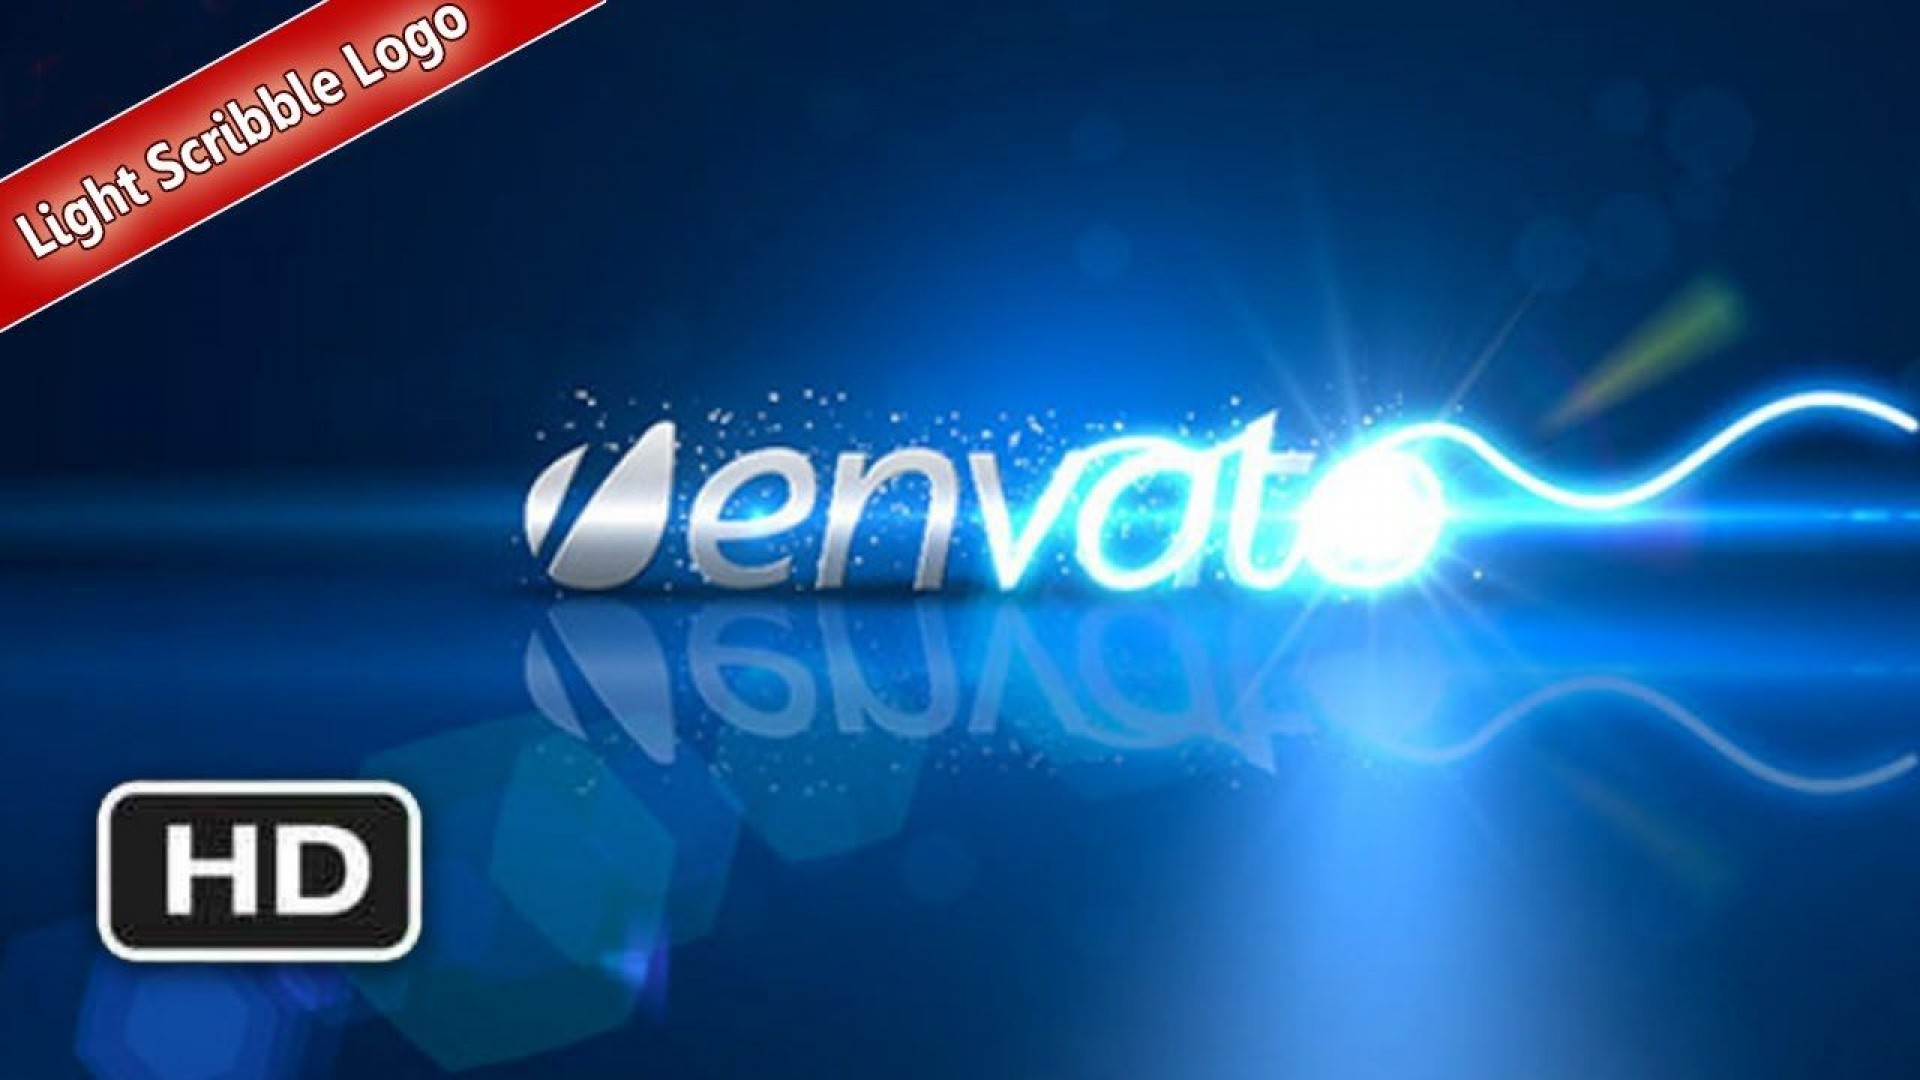 003 Astounding Videohive After Effect Template Highest Quality  Templates Envato Map Kit - Free Download1920